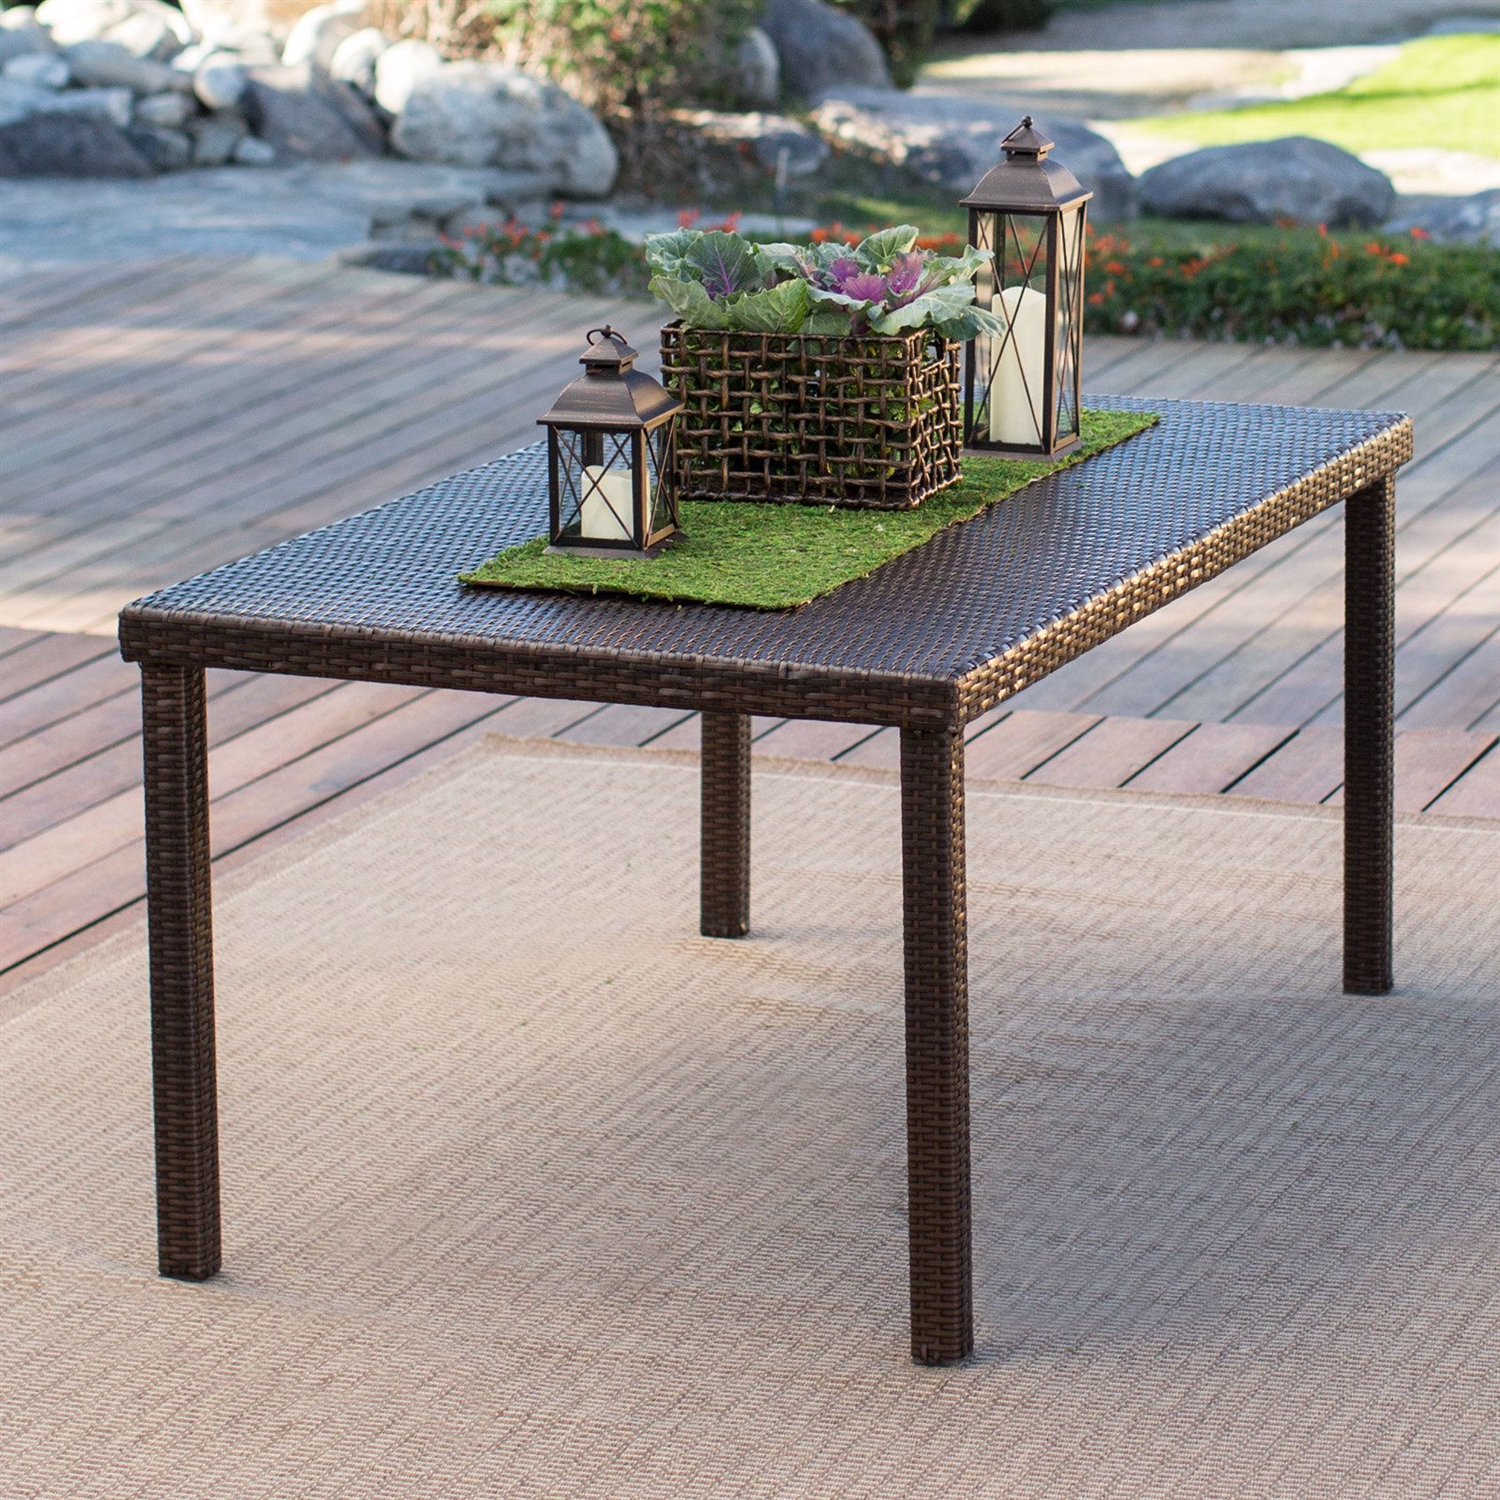 Dark Brown 63-inch Outdoor Resin Wicker Rectangular Patio Dining Table -  Seats 6 | FastFurnishings.com - Dark Brown 63-inch Outdoor Resin Wicker Rectangular Patio Dining